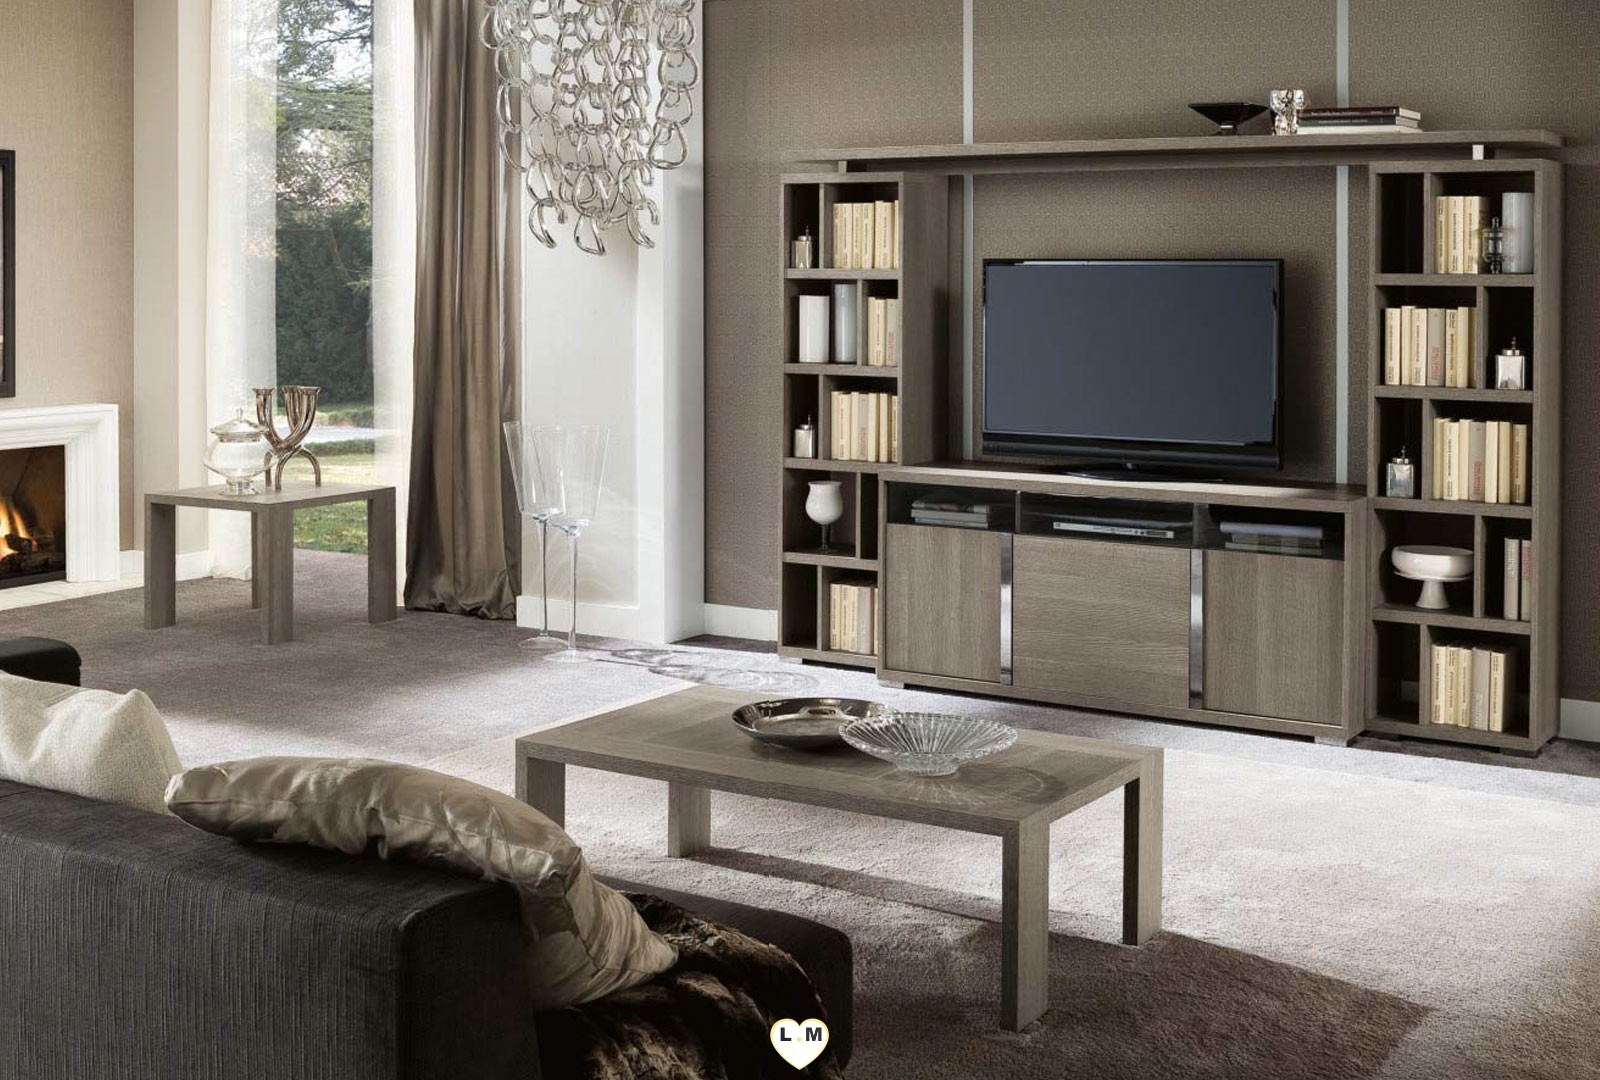 riverside chene gris mat composition murale meuble tv lignemeuble com. Black Bedroom Furniture Sets. Home Design Ideas